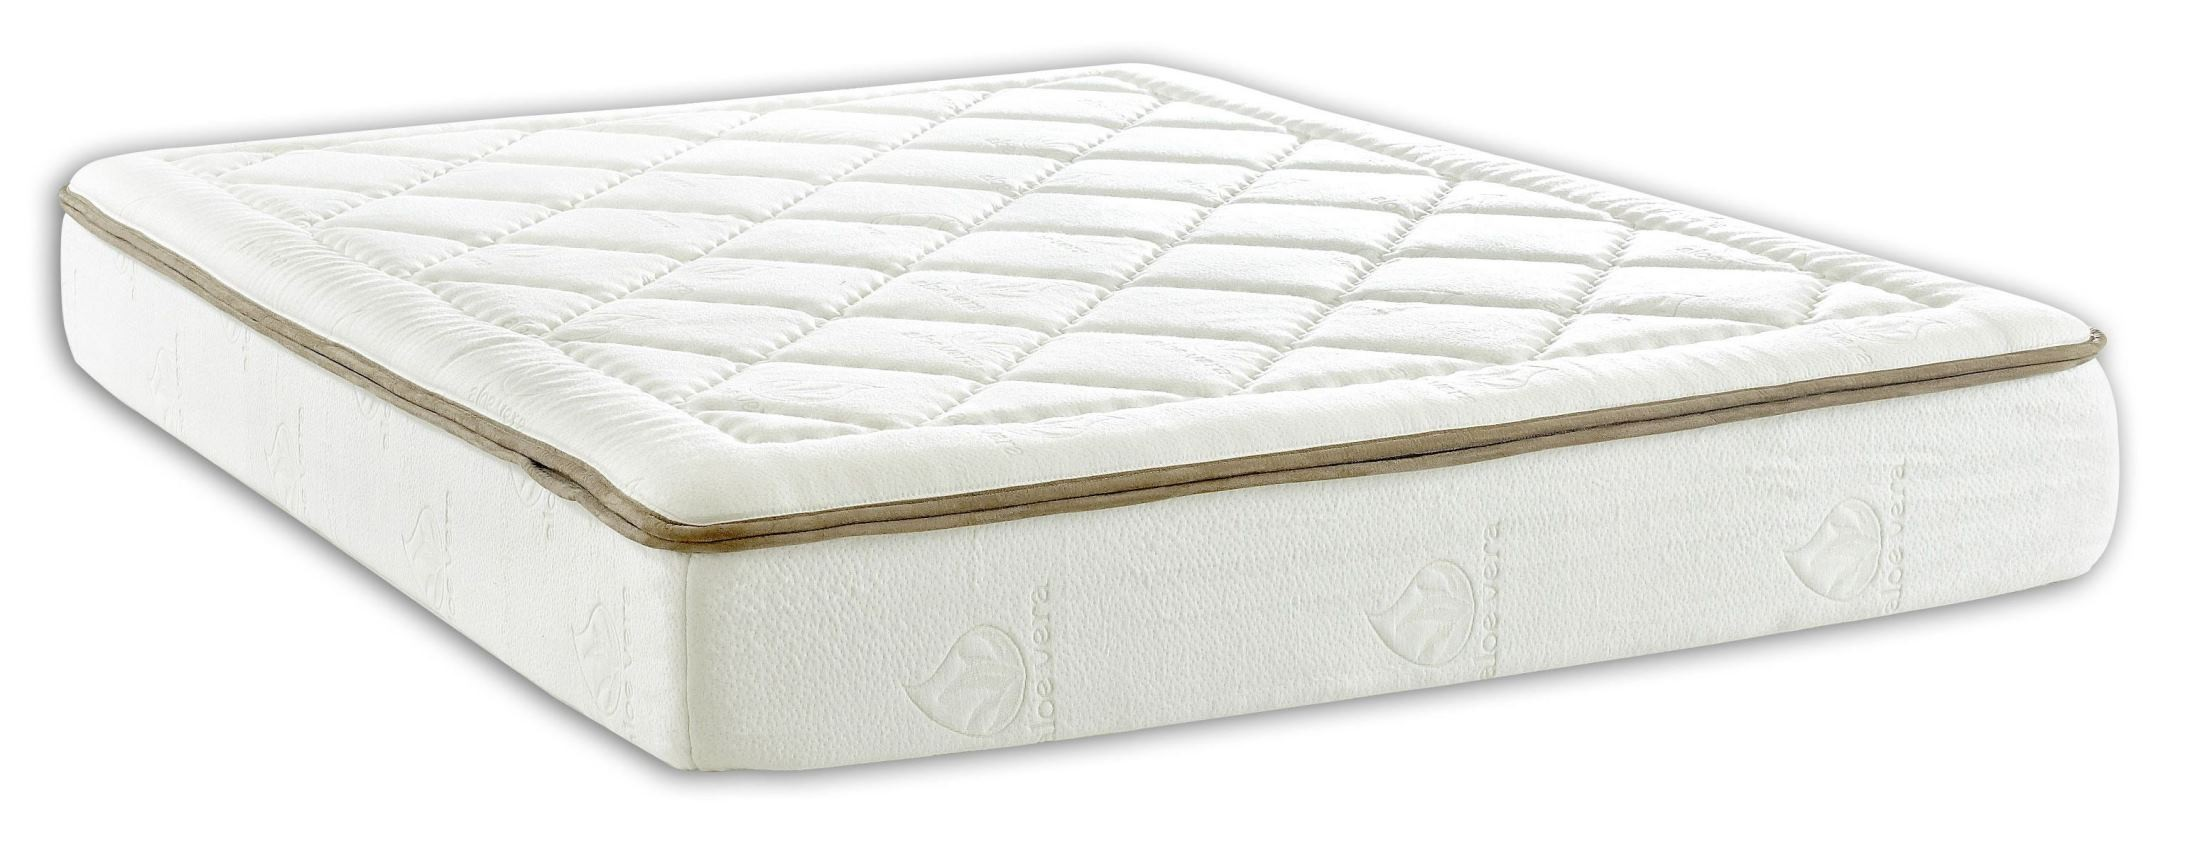 Dream Weaver 10 Memory Foam Twin Mattress From Klaussner Drmwvrttmat Coleman Furniture